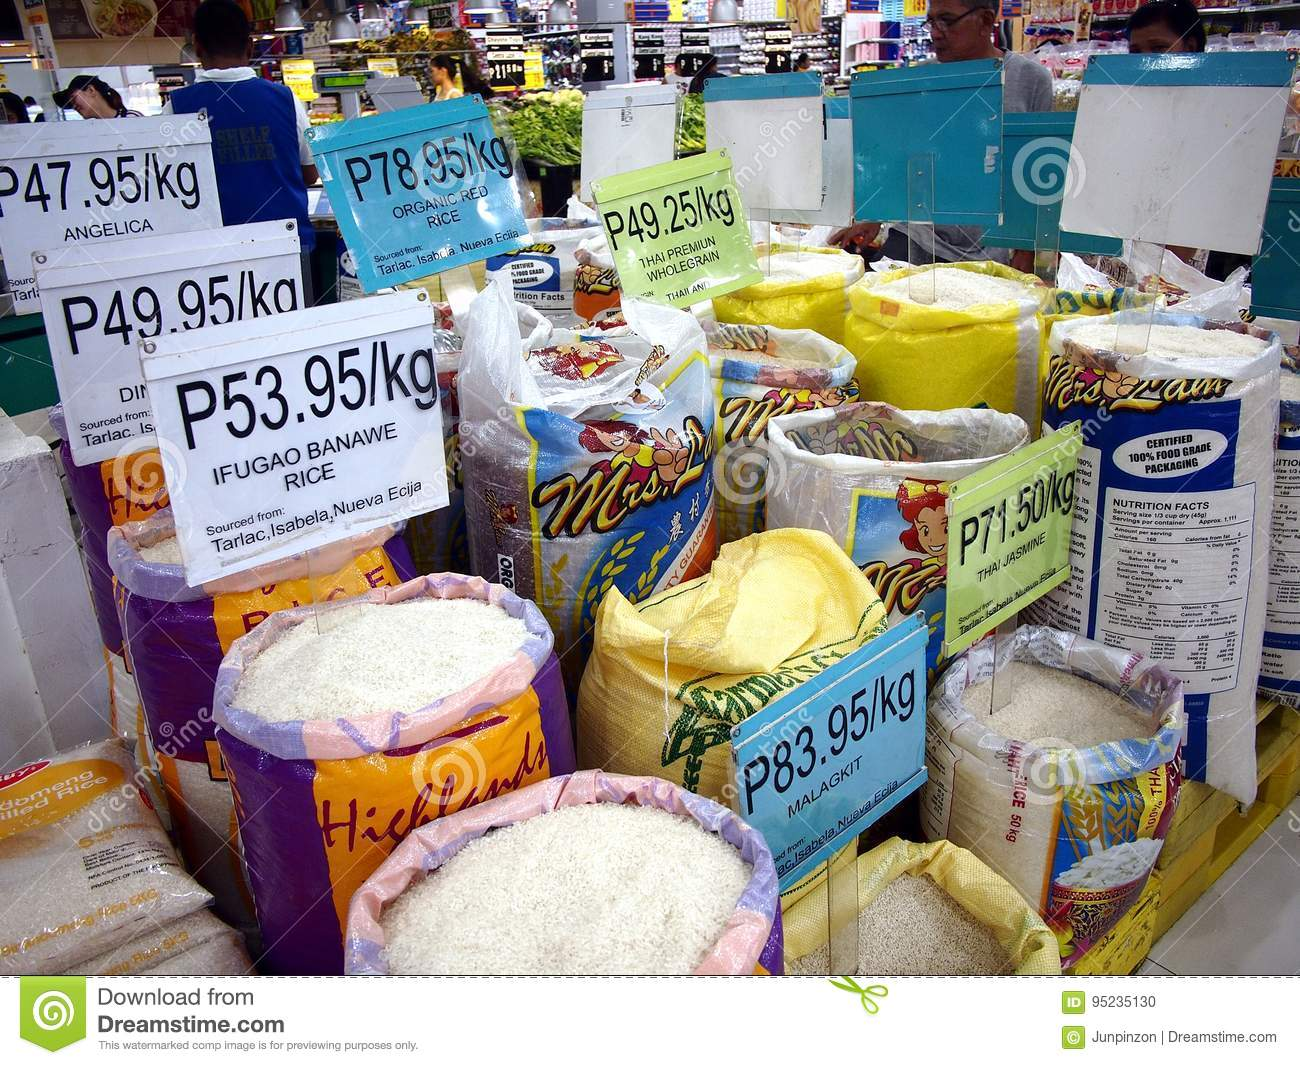 An assortment of fresh uncooked commercial rice on sale at a grocery store.